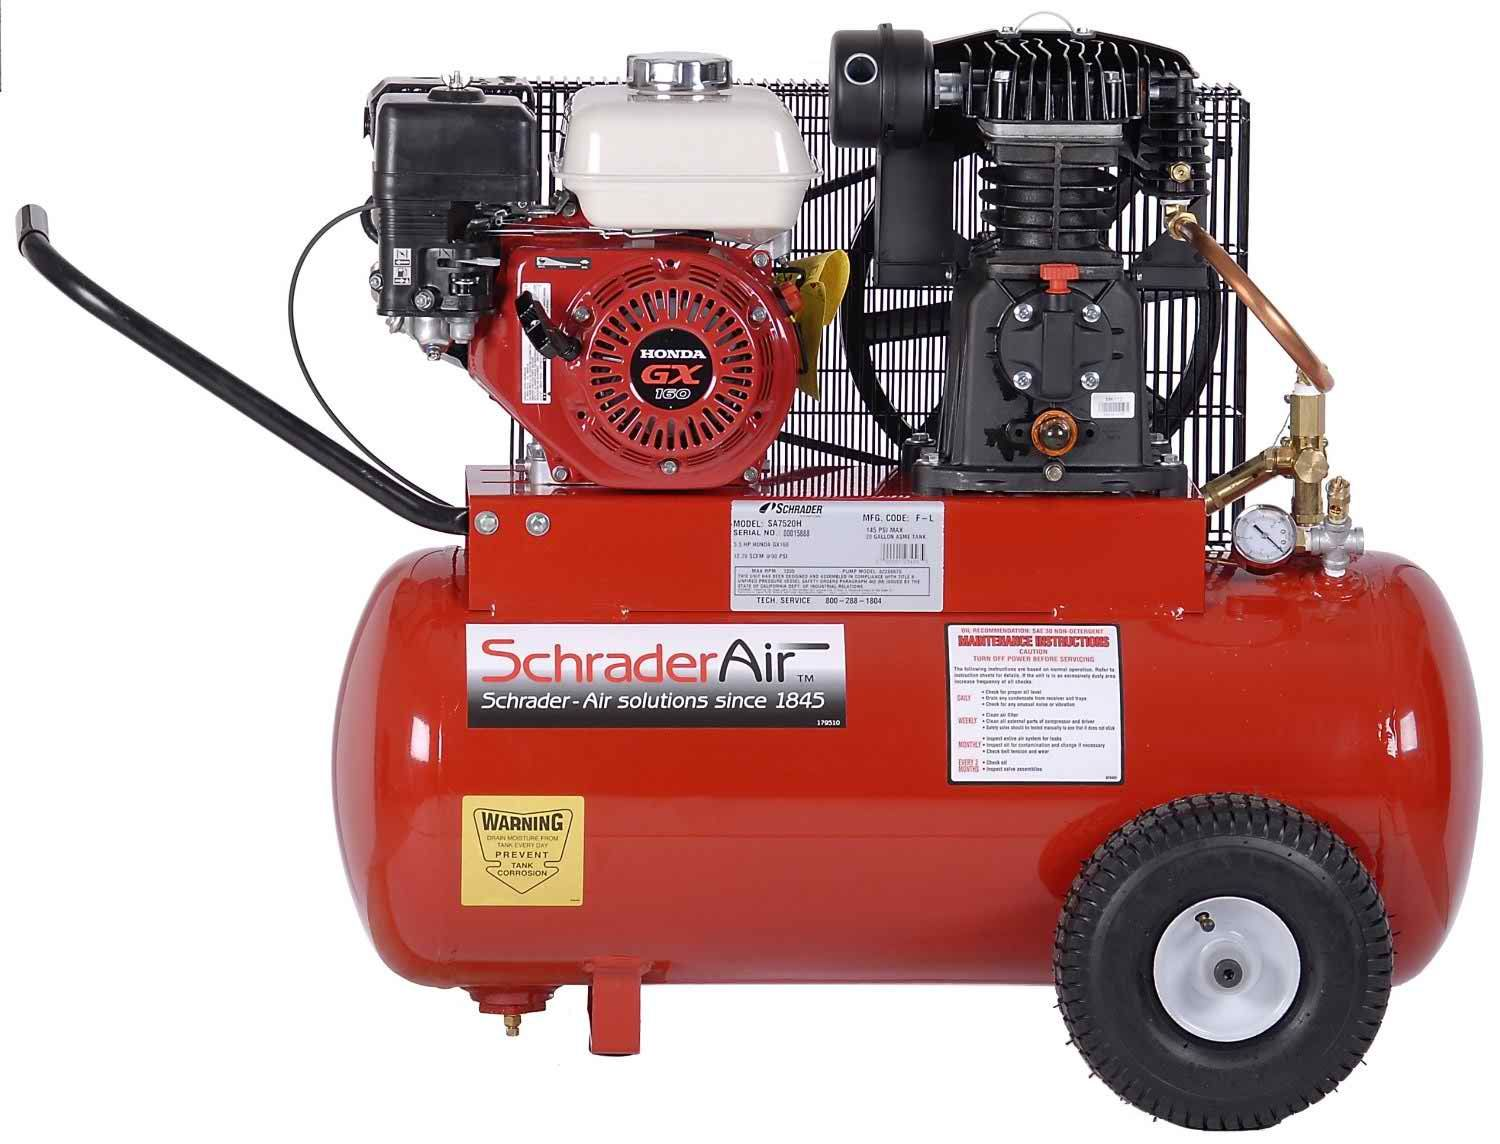 Are You Looking For The Best Diesel Air Compressor